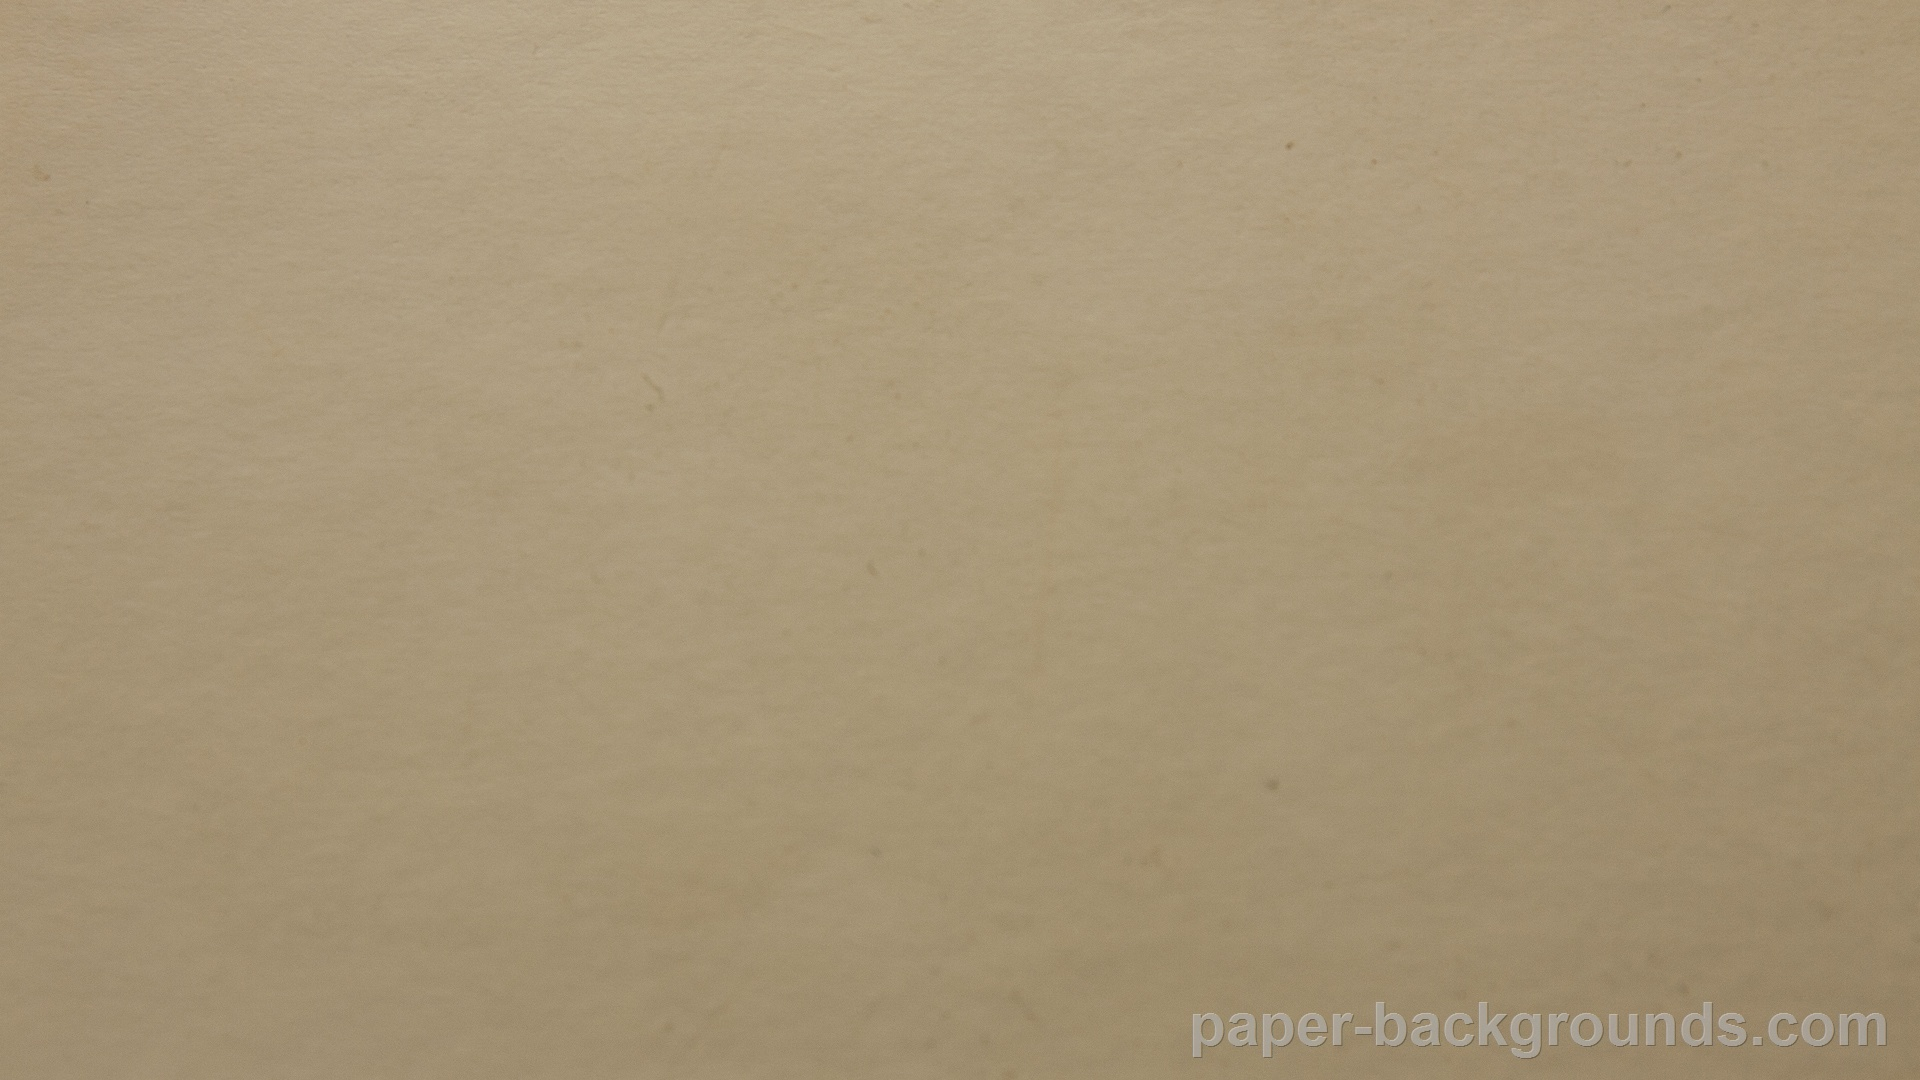 carboard_paper_background_full_hd